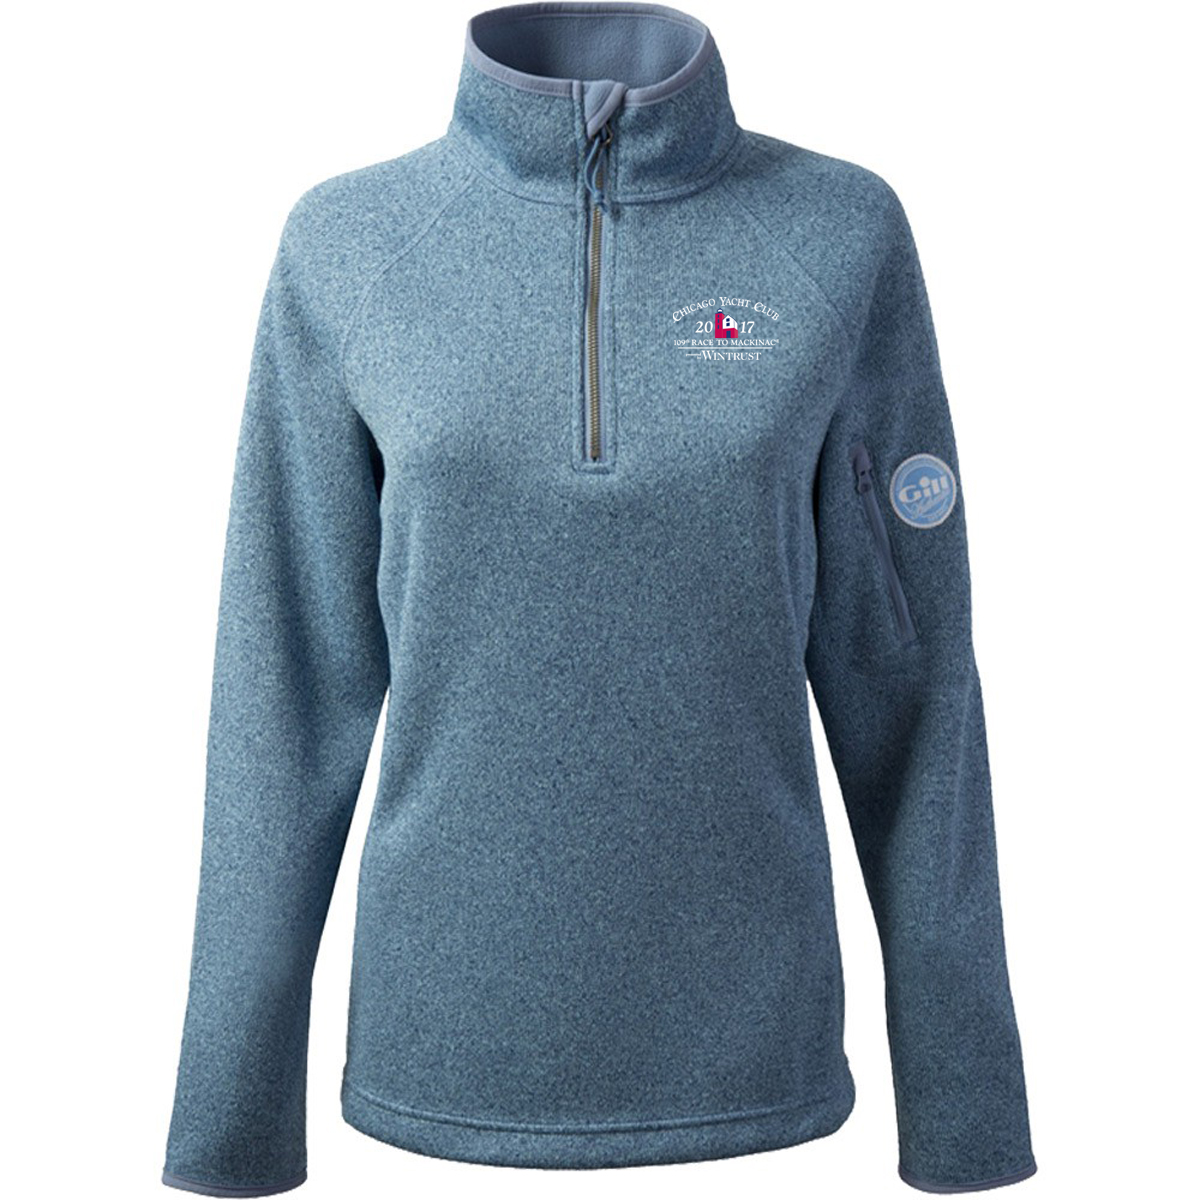 Chicago Mackinac Race 2017 - Women's Knit Fleece